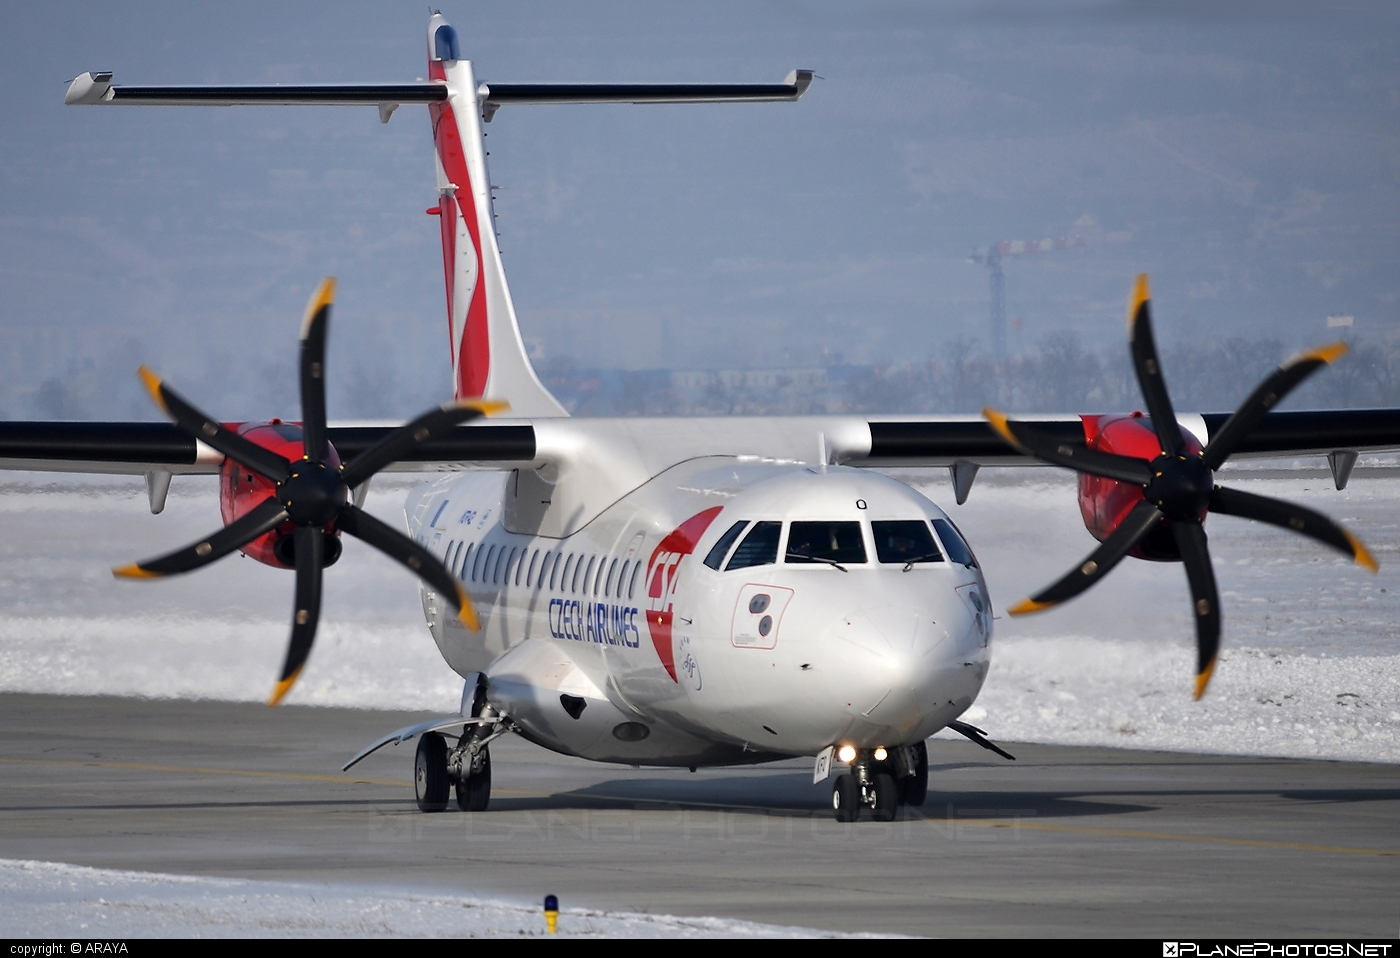 ATR 42-500 - OK-KFO operated by CSA Czech Airlines #atr #atr42 #atr42500 #csa #czechairlines